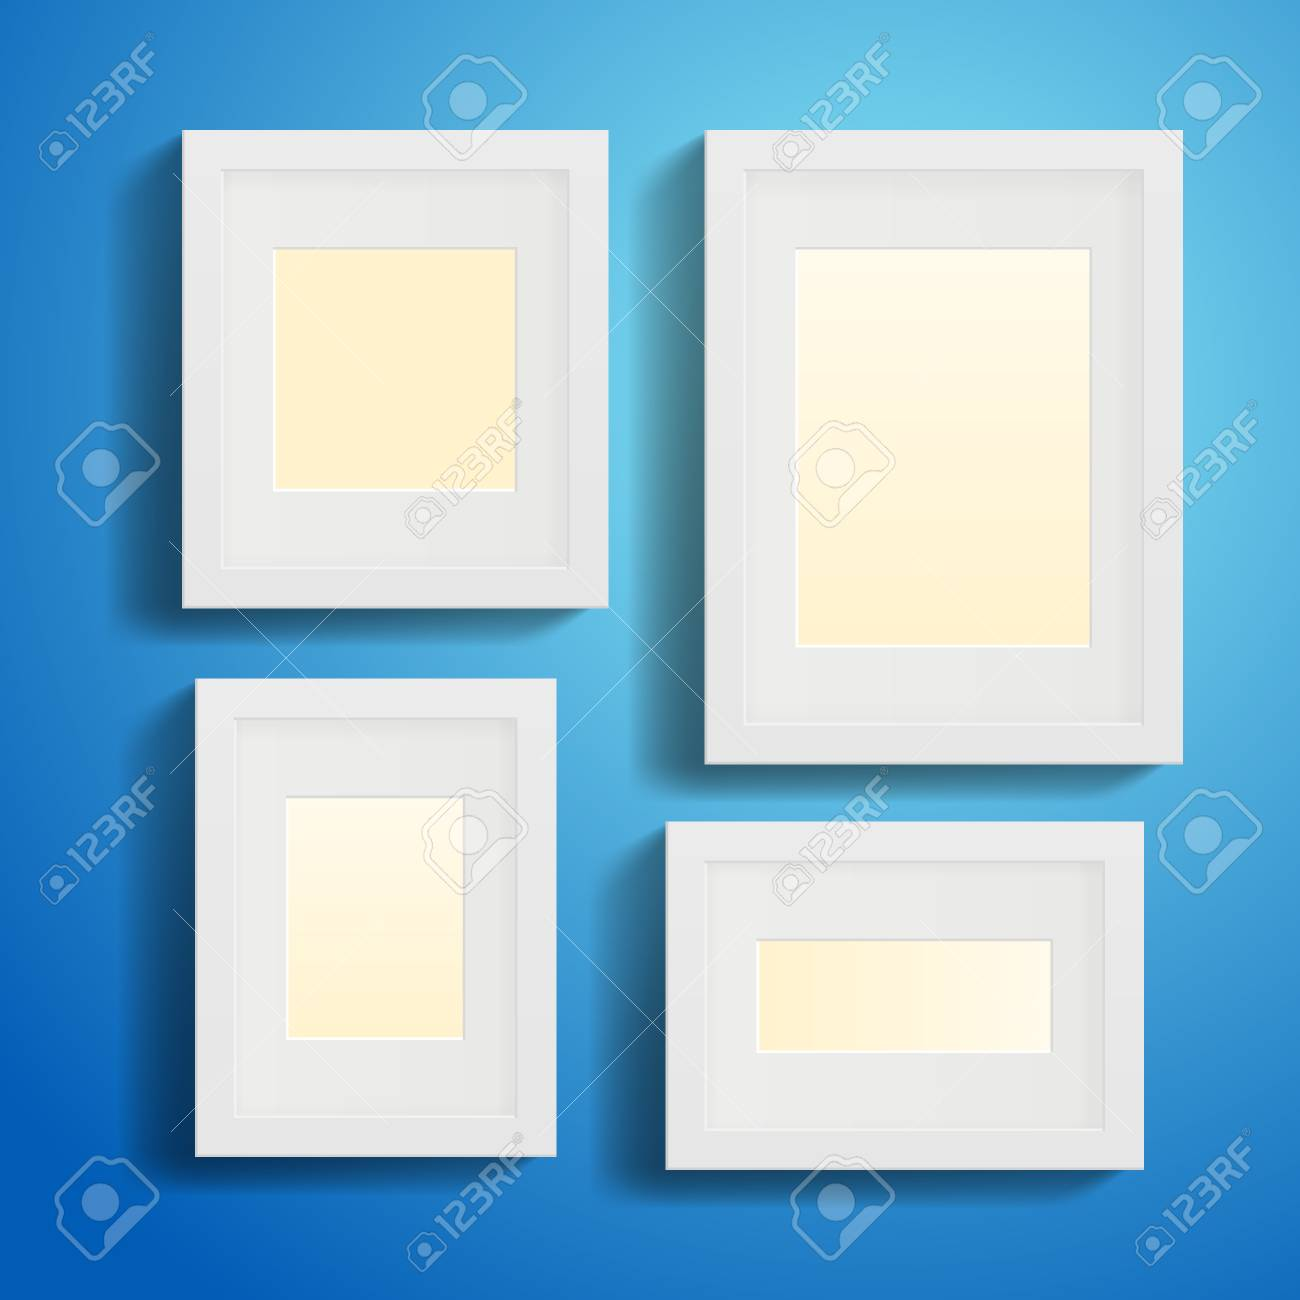 Modern Picture or Photo Frames with shadows Stock Vector - 22787250